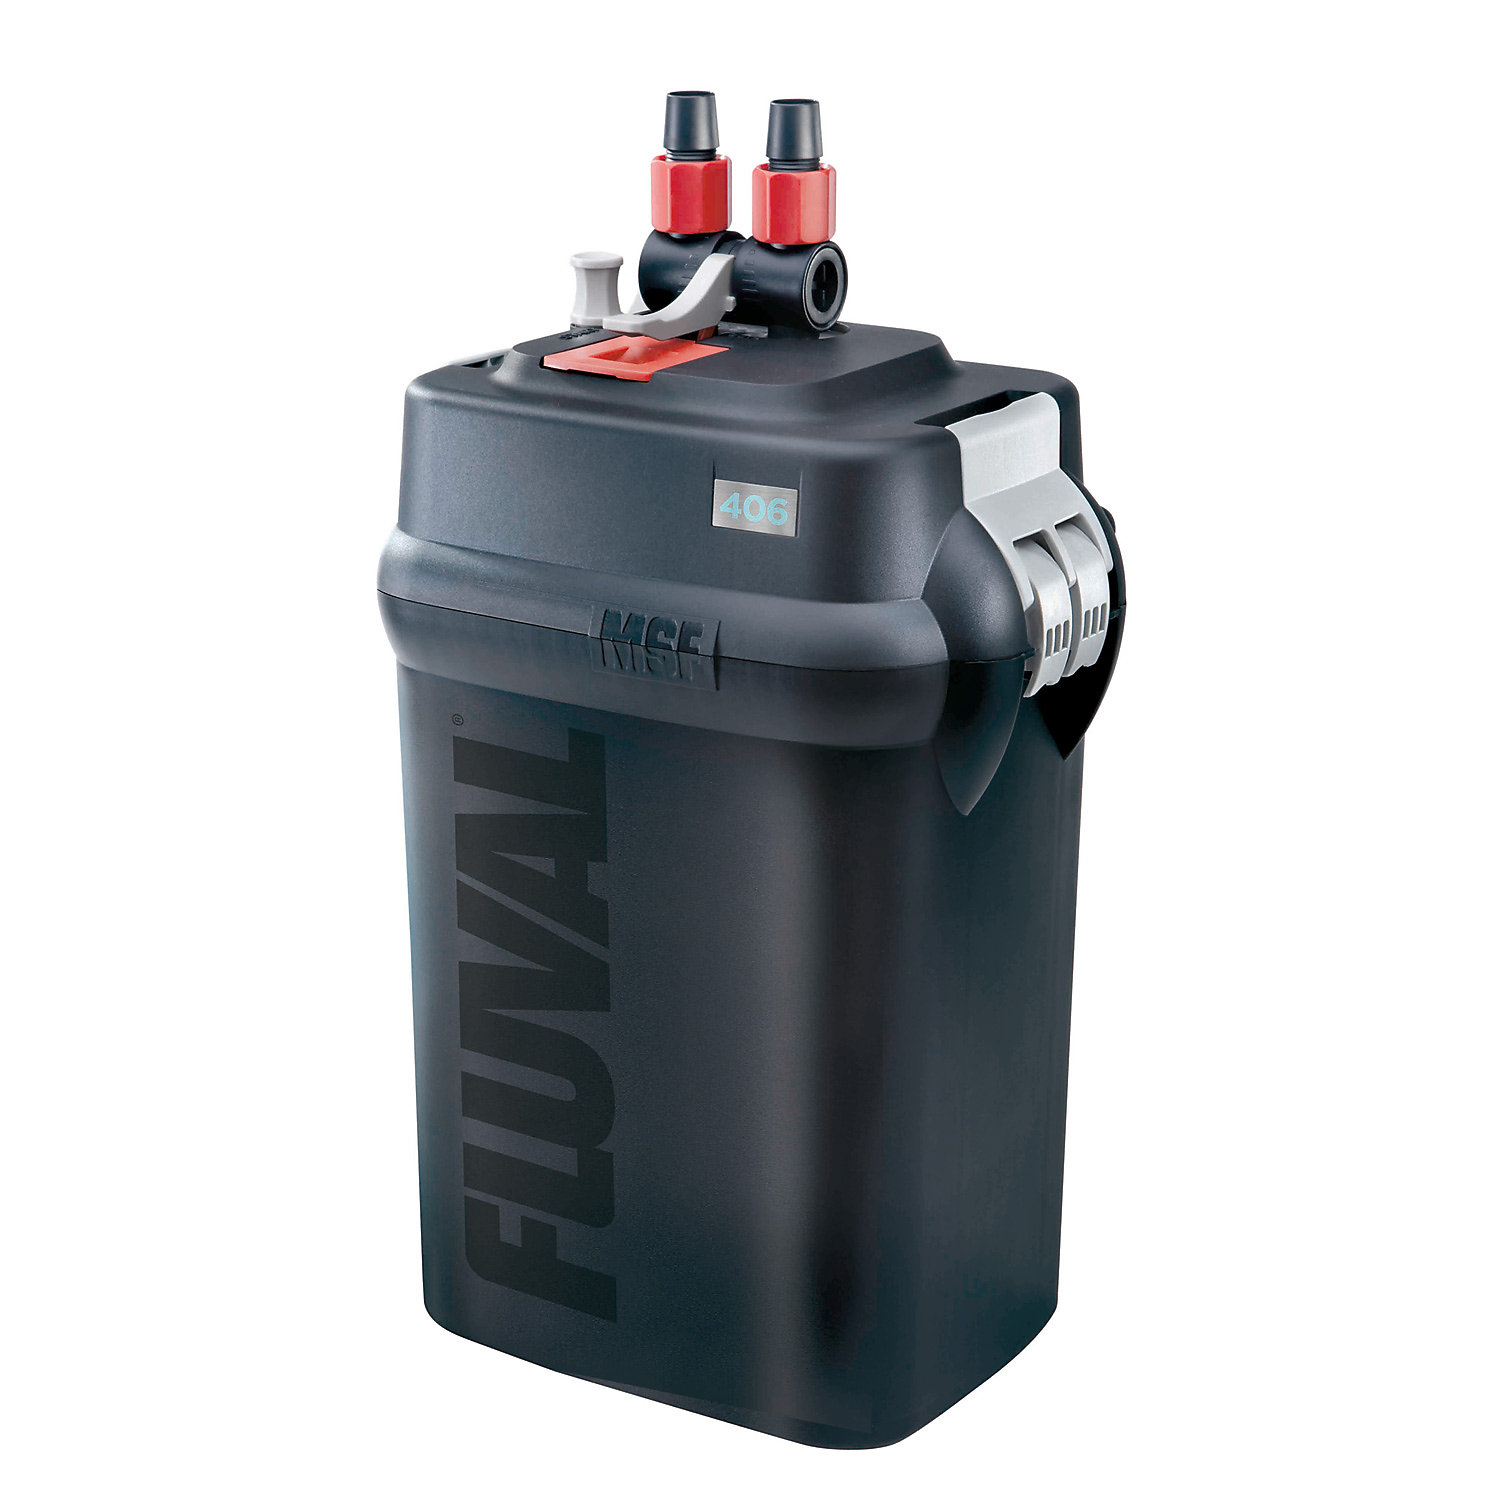 Fluval 406 External Canister Filters